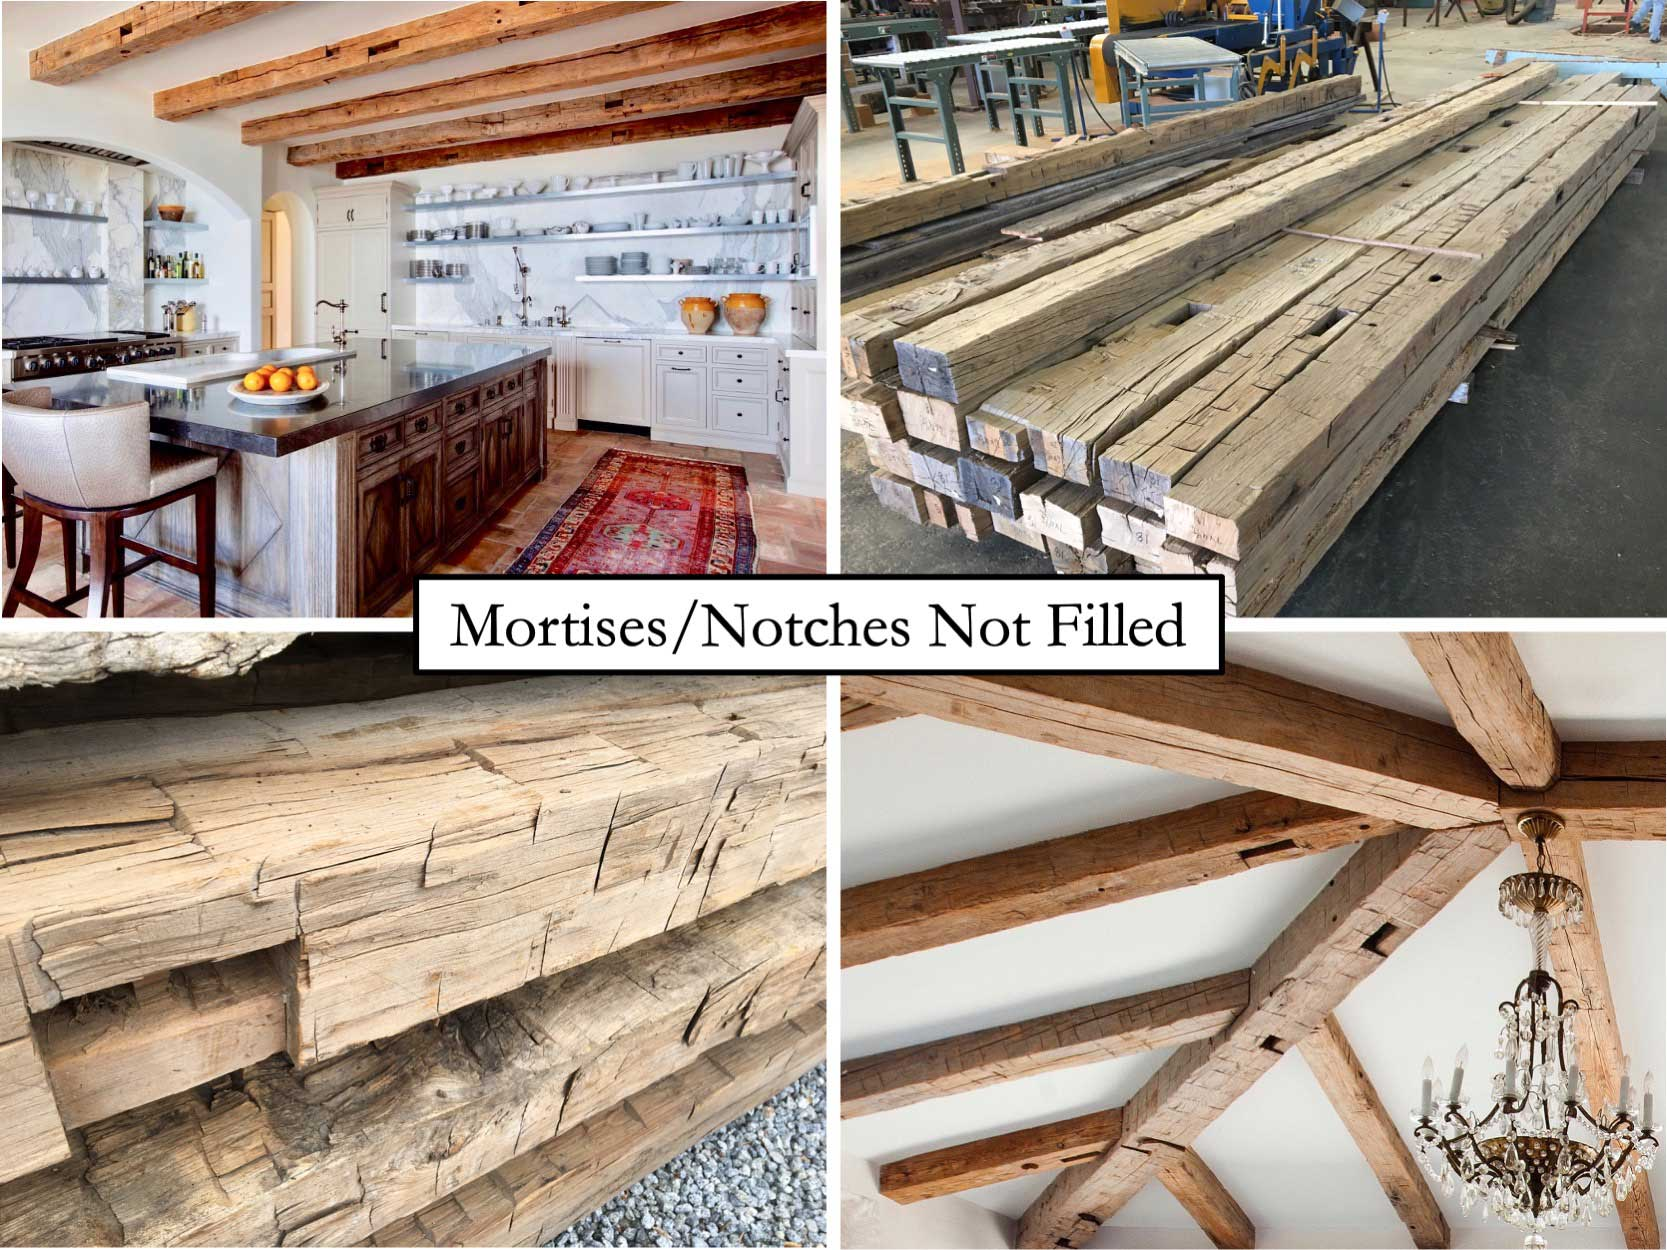 hardwood barn timbers with notches